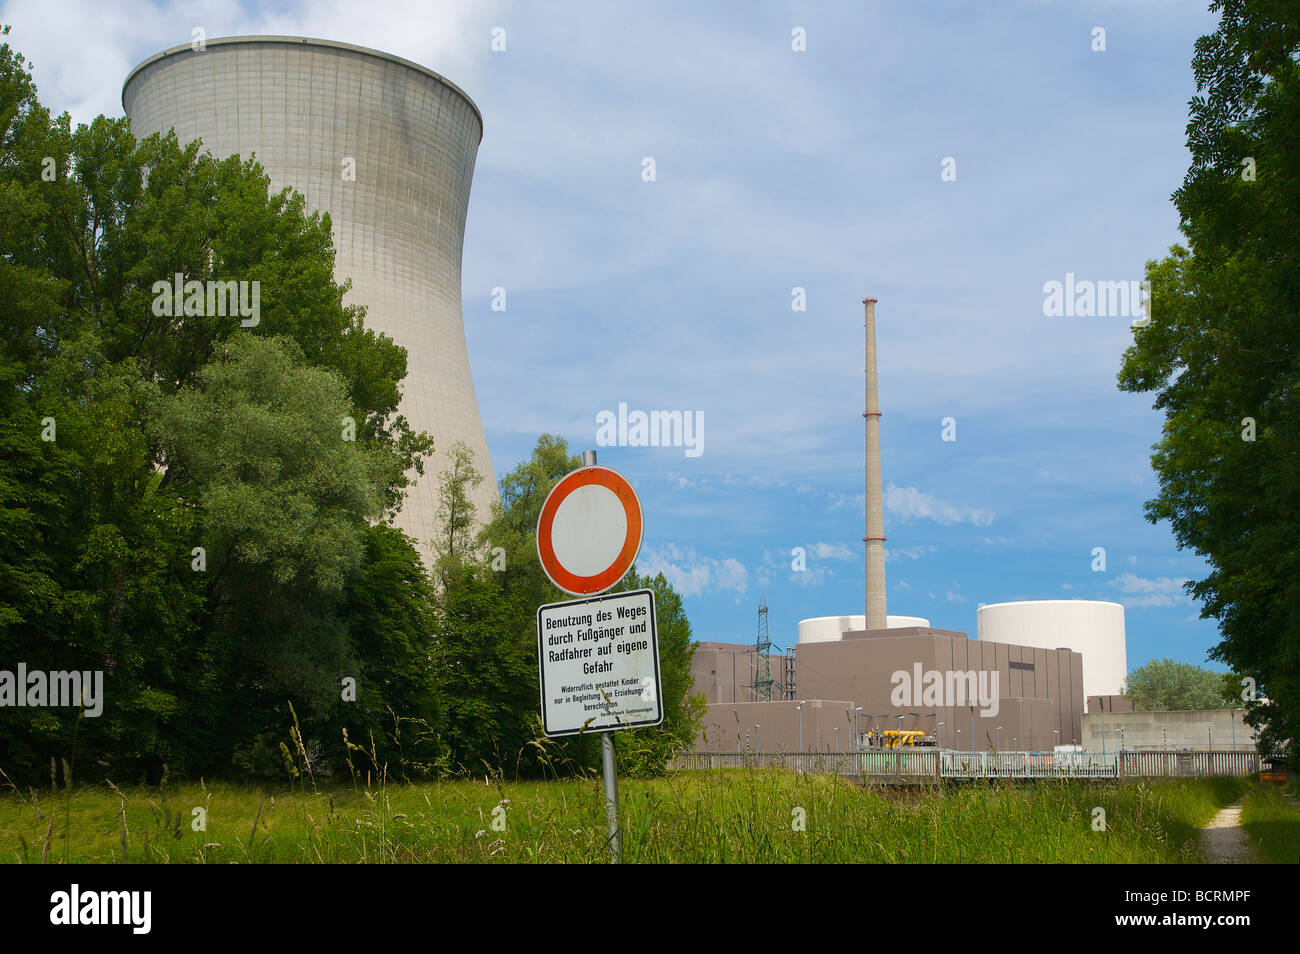 Gundremmingen nuclear power plant in Bavaria, Germany. Stop sign: Pedestrians and cyclists may use this path on - Stock Image